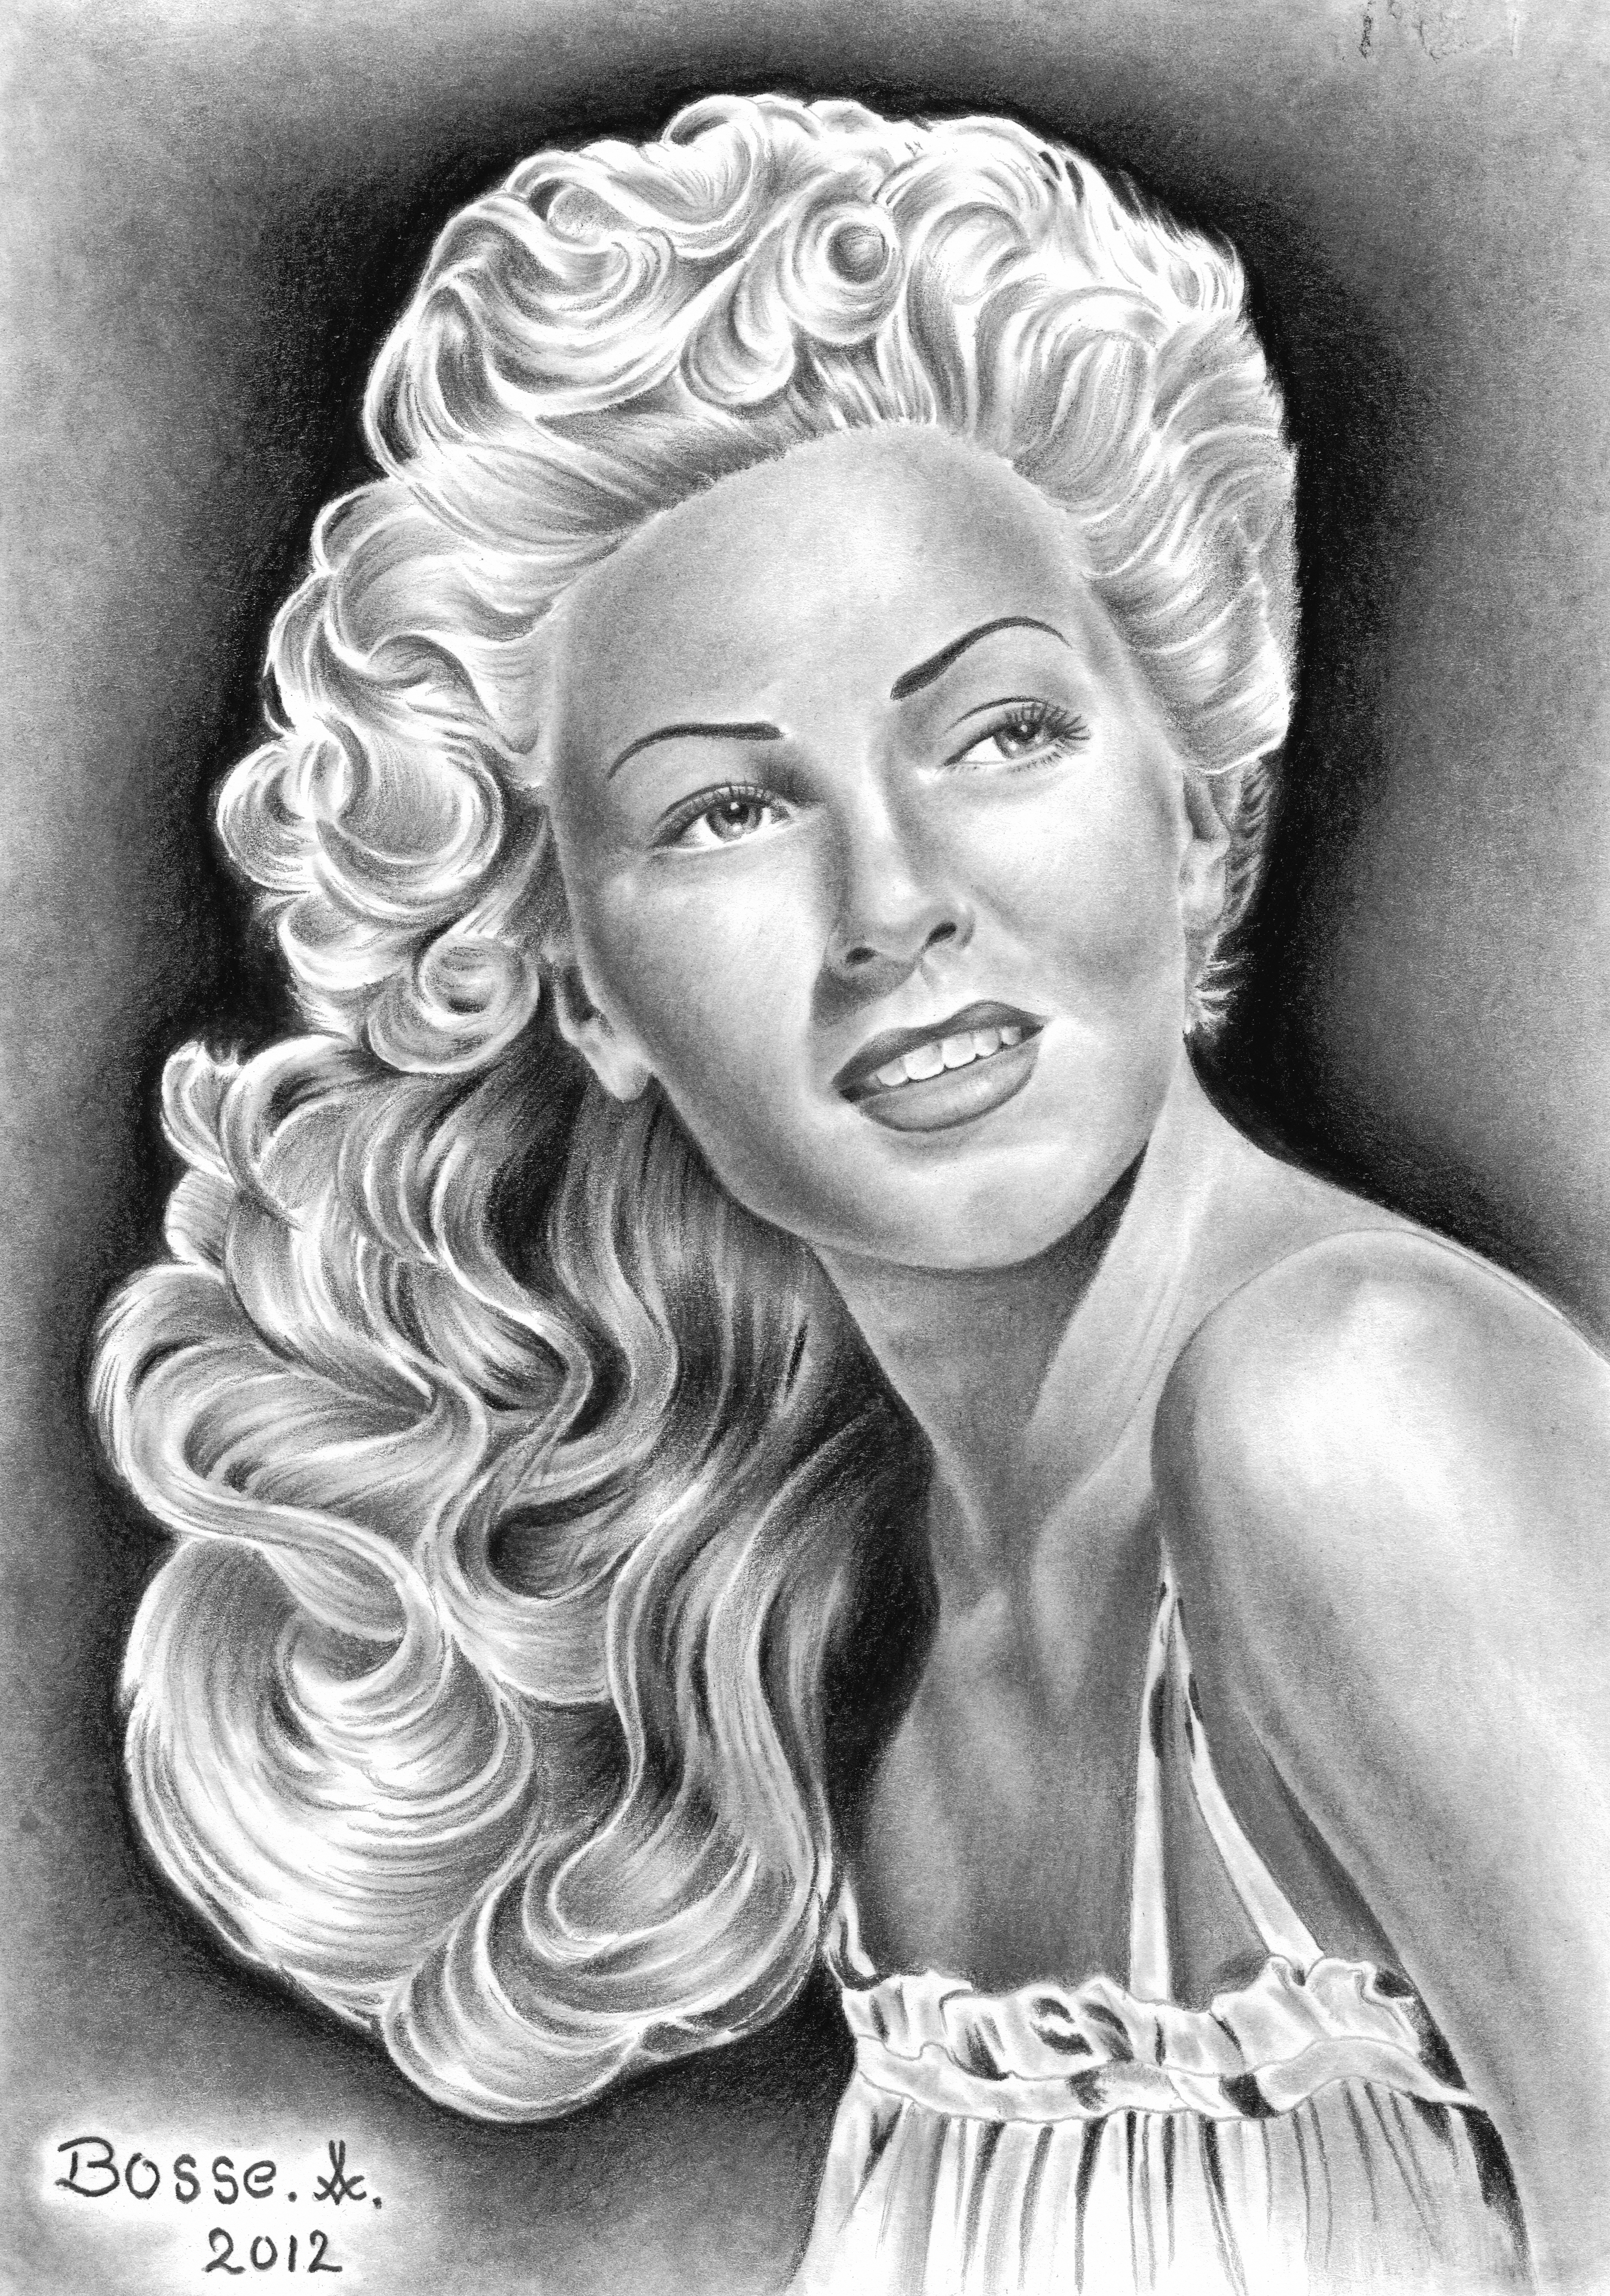 Lana Turner by Torsk1